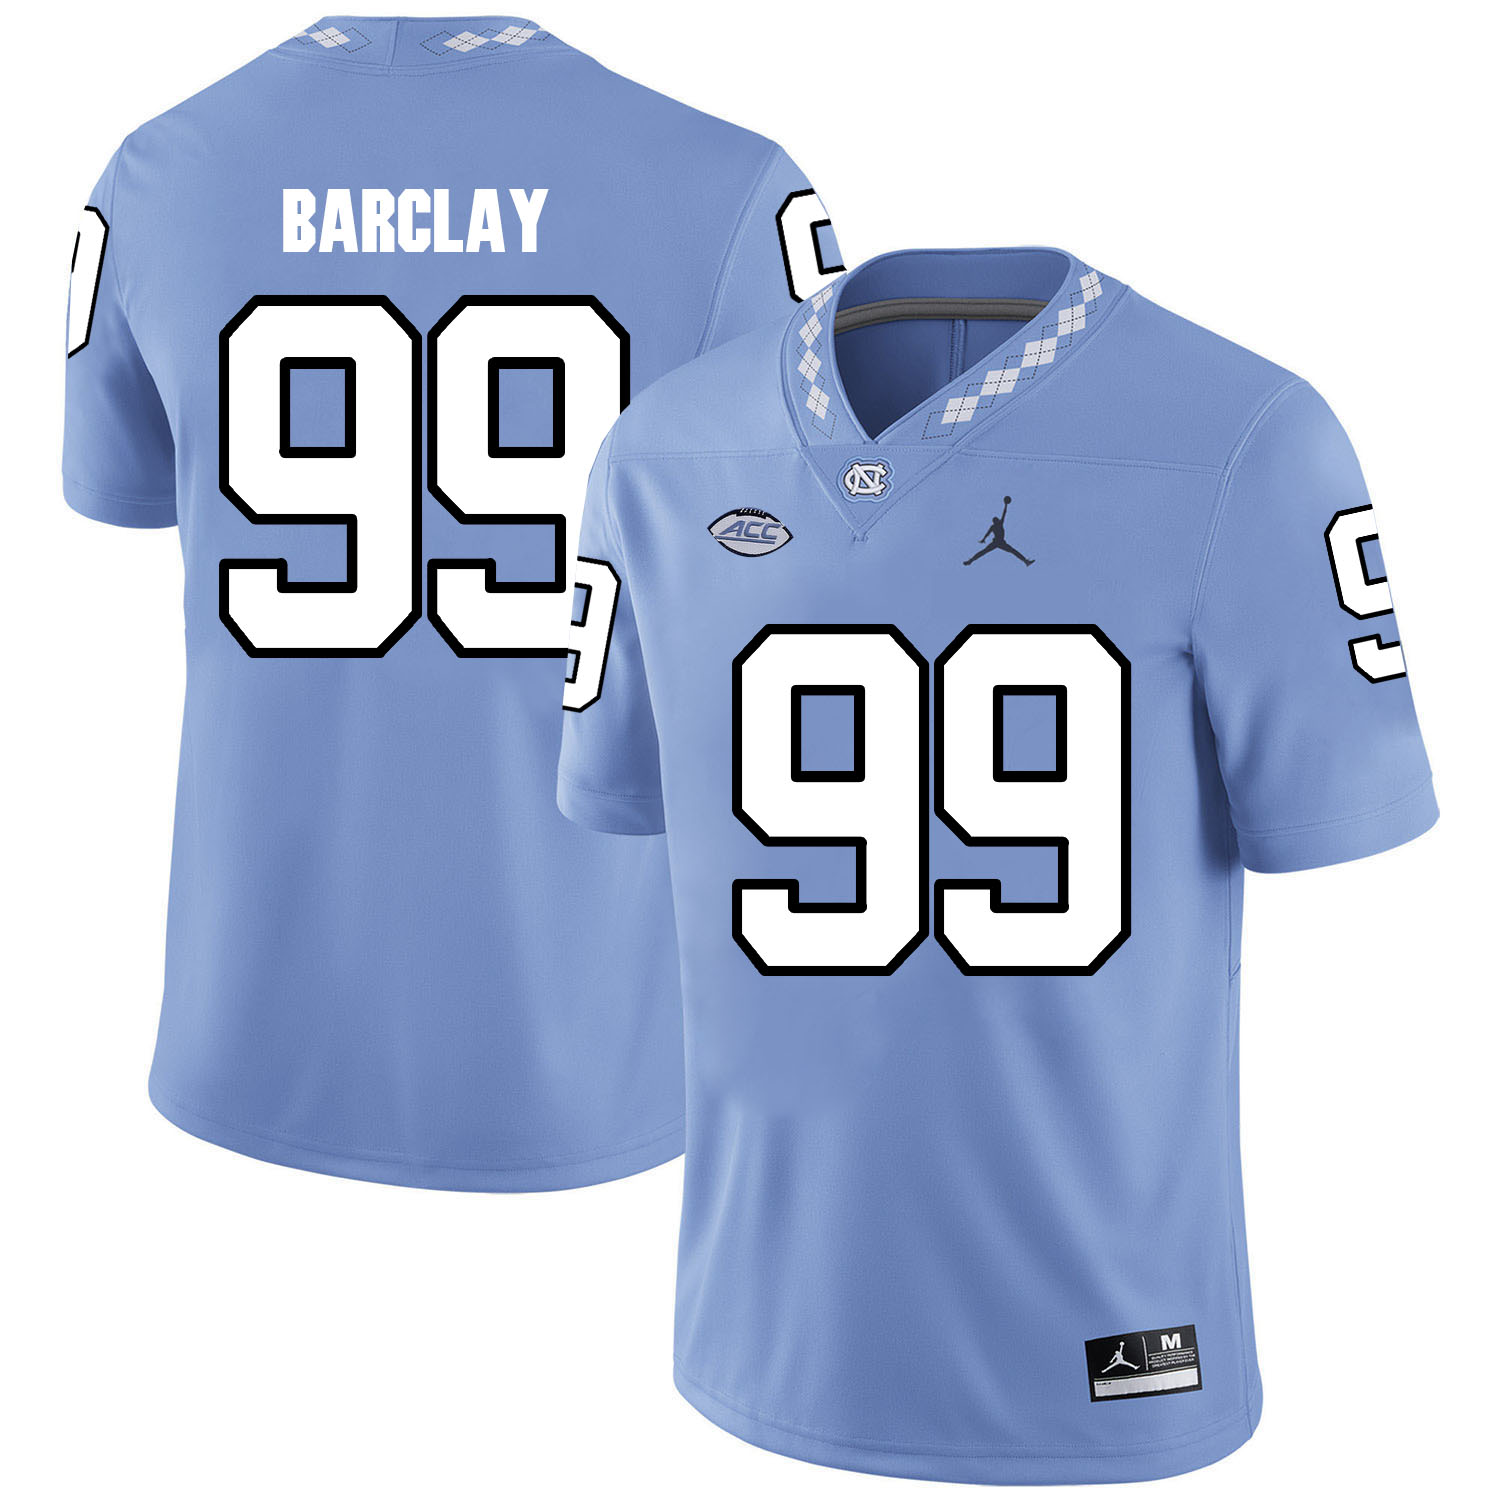 North Carolina Tar Heels 99 George Barclay Blue College Football Jersey